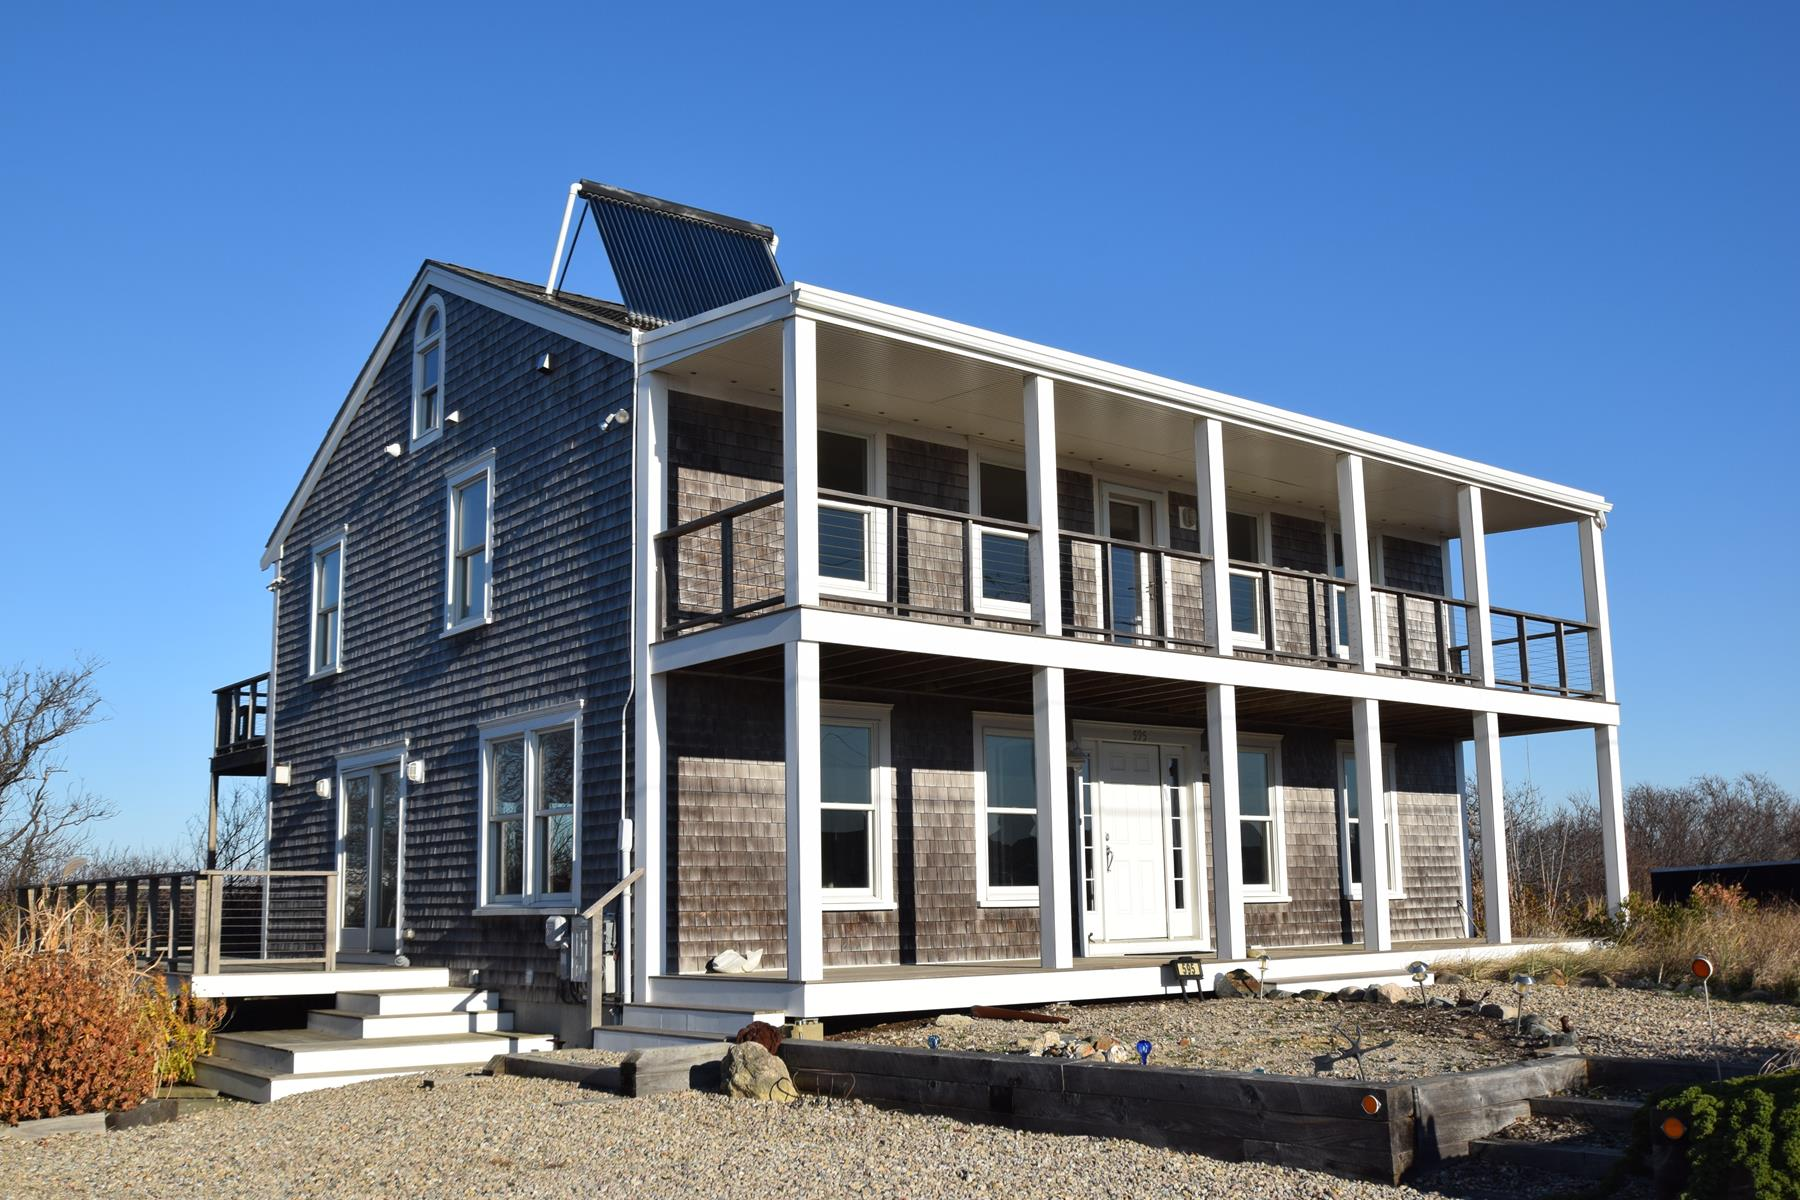 Single Family Home for Sale at Beach Point 595 Shore Road Truro, Massachusetts, 02666 United States